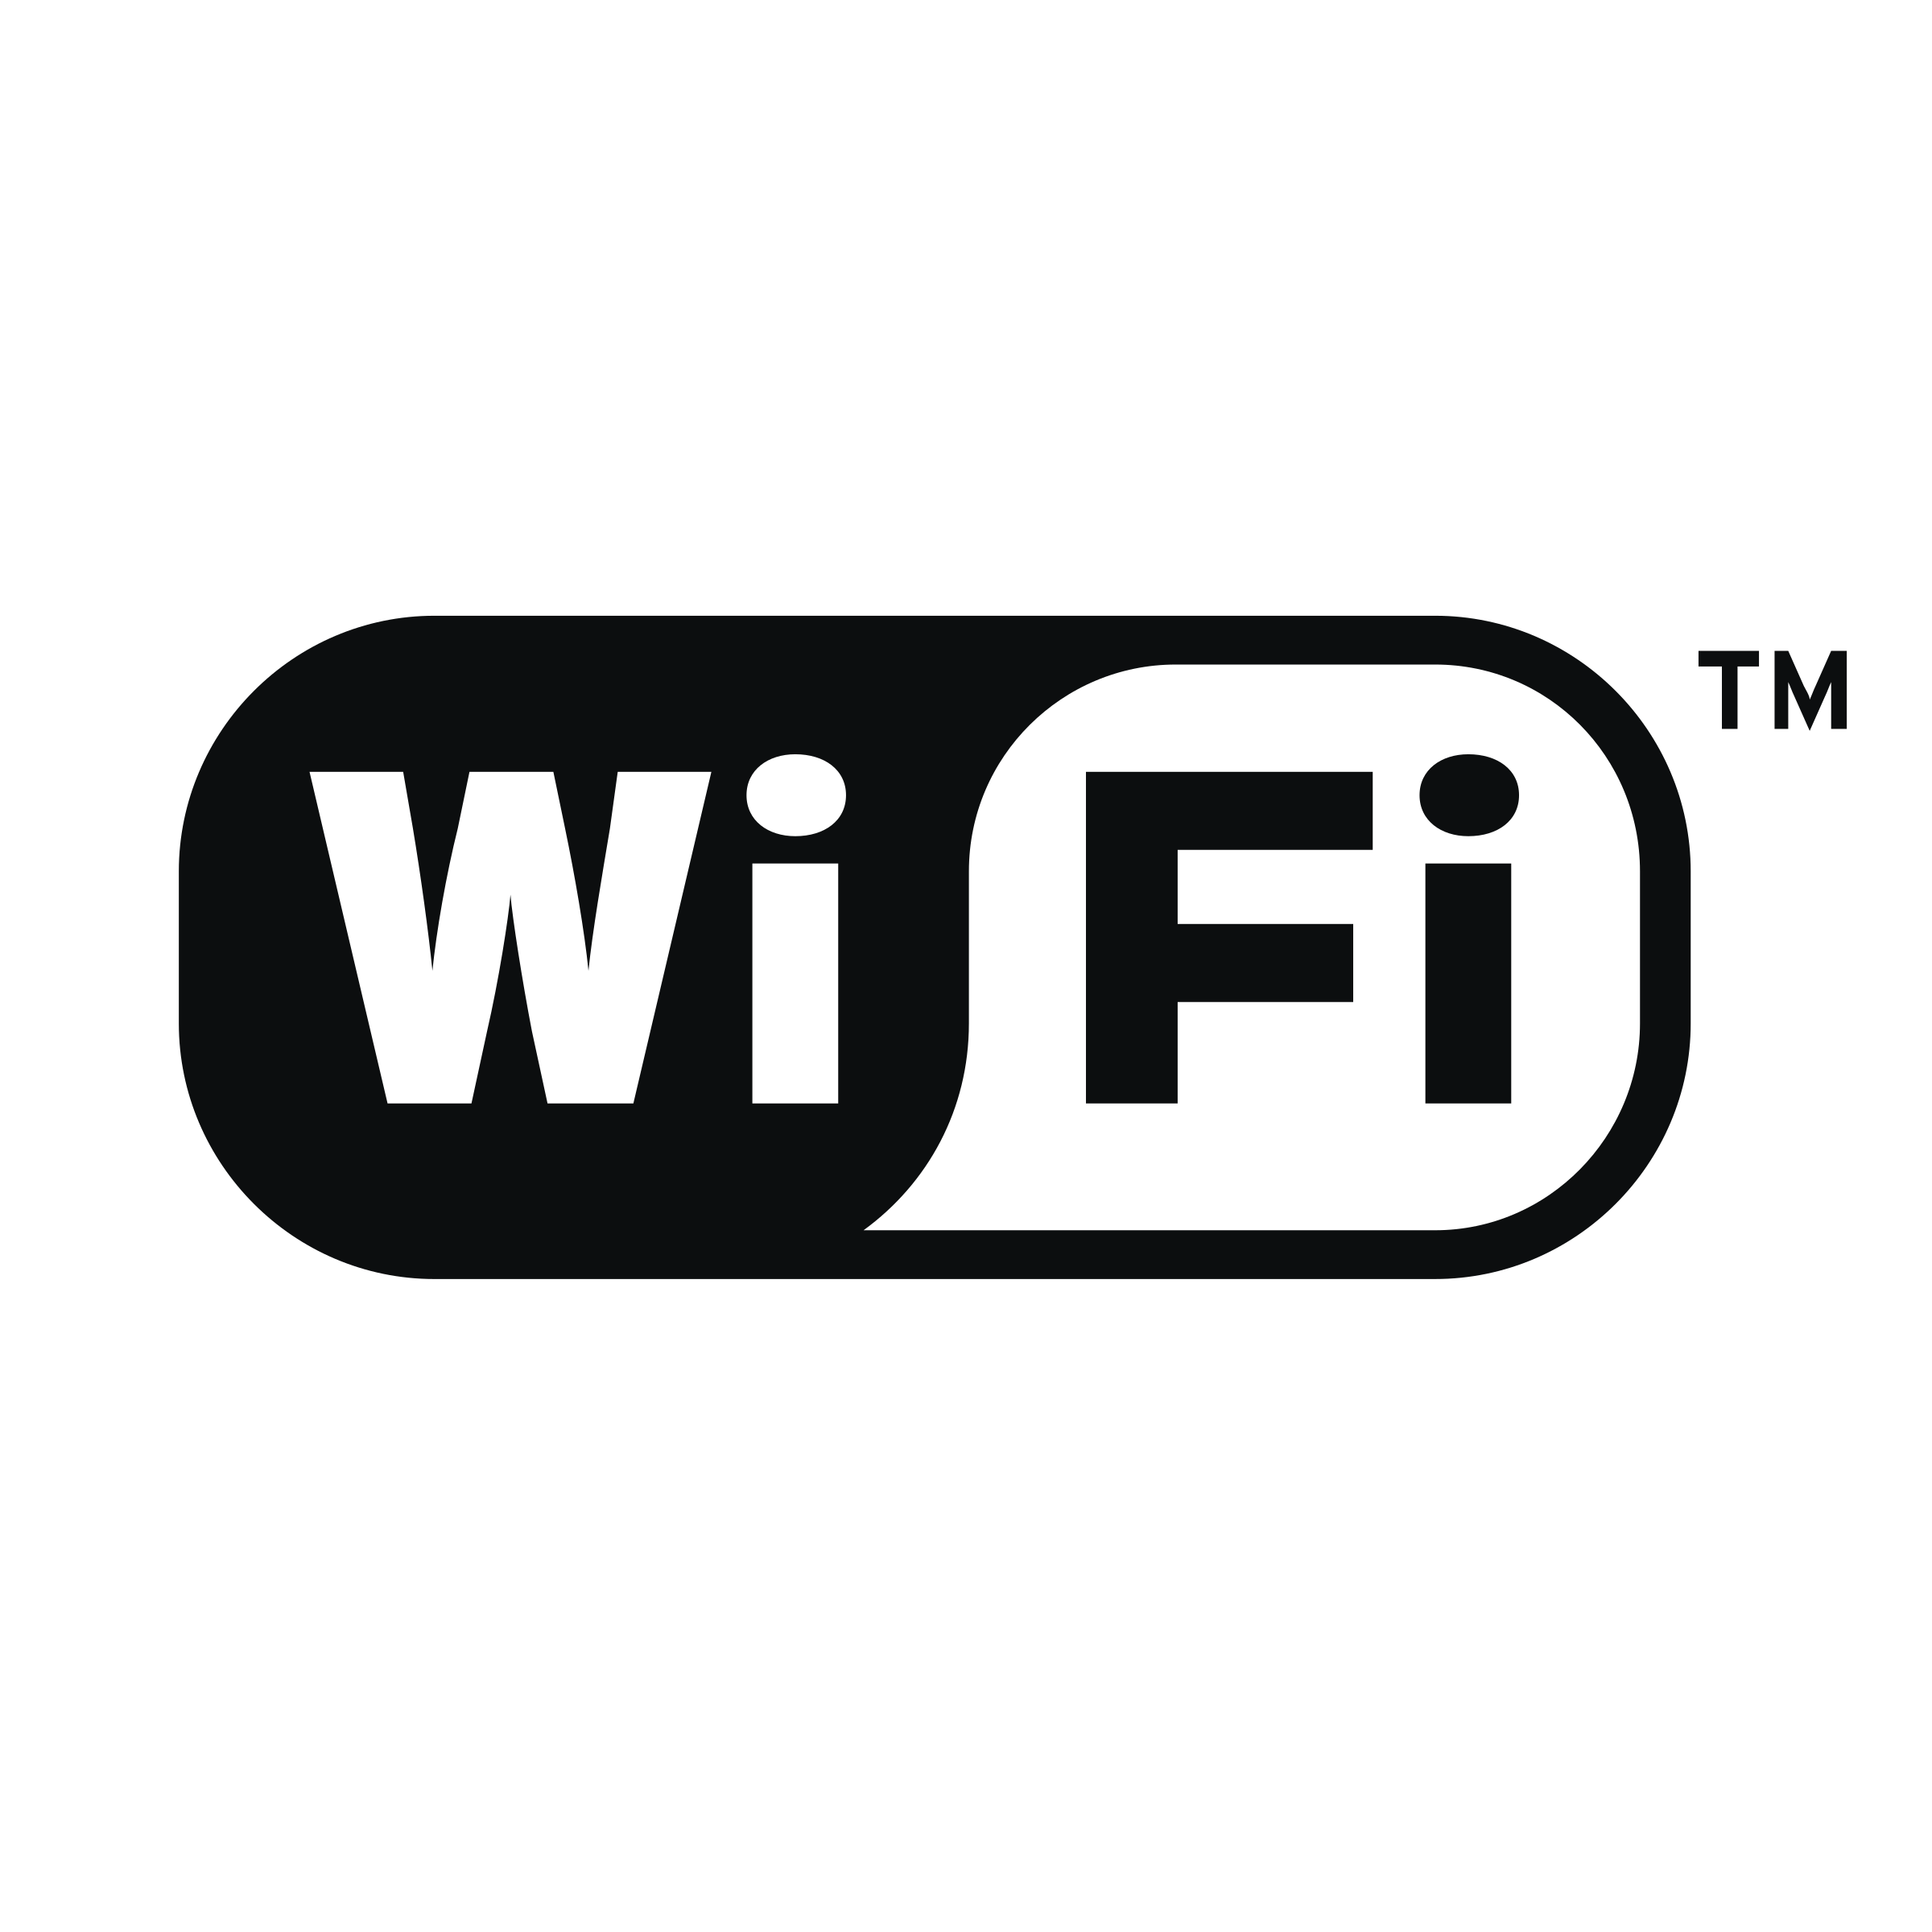 Wifi png logo. Transparent svg vector freebie